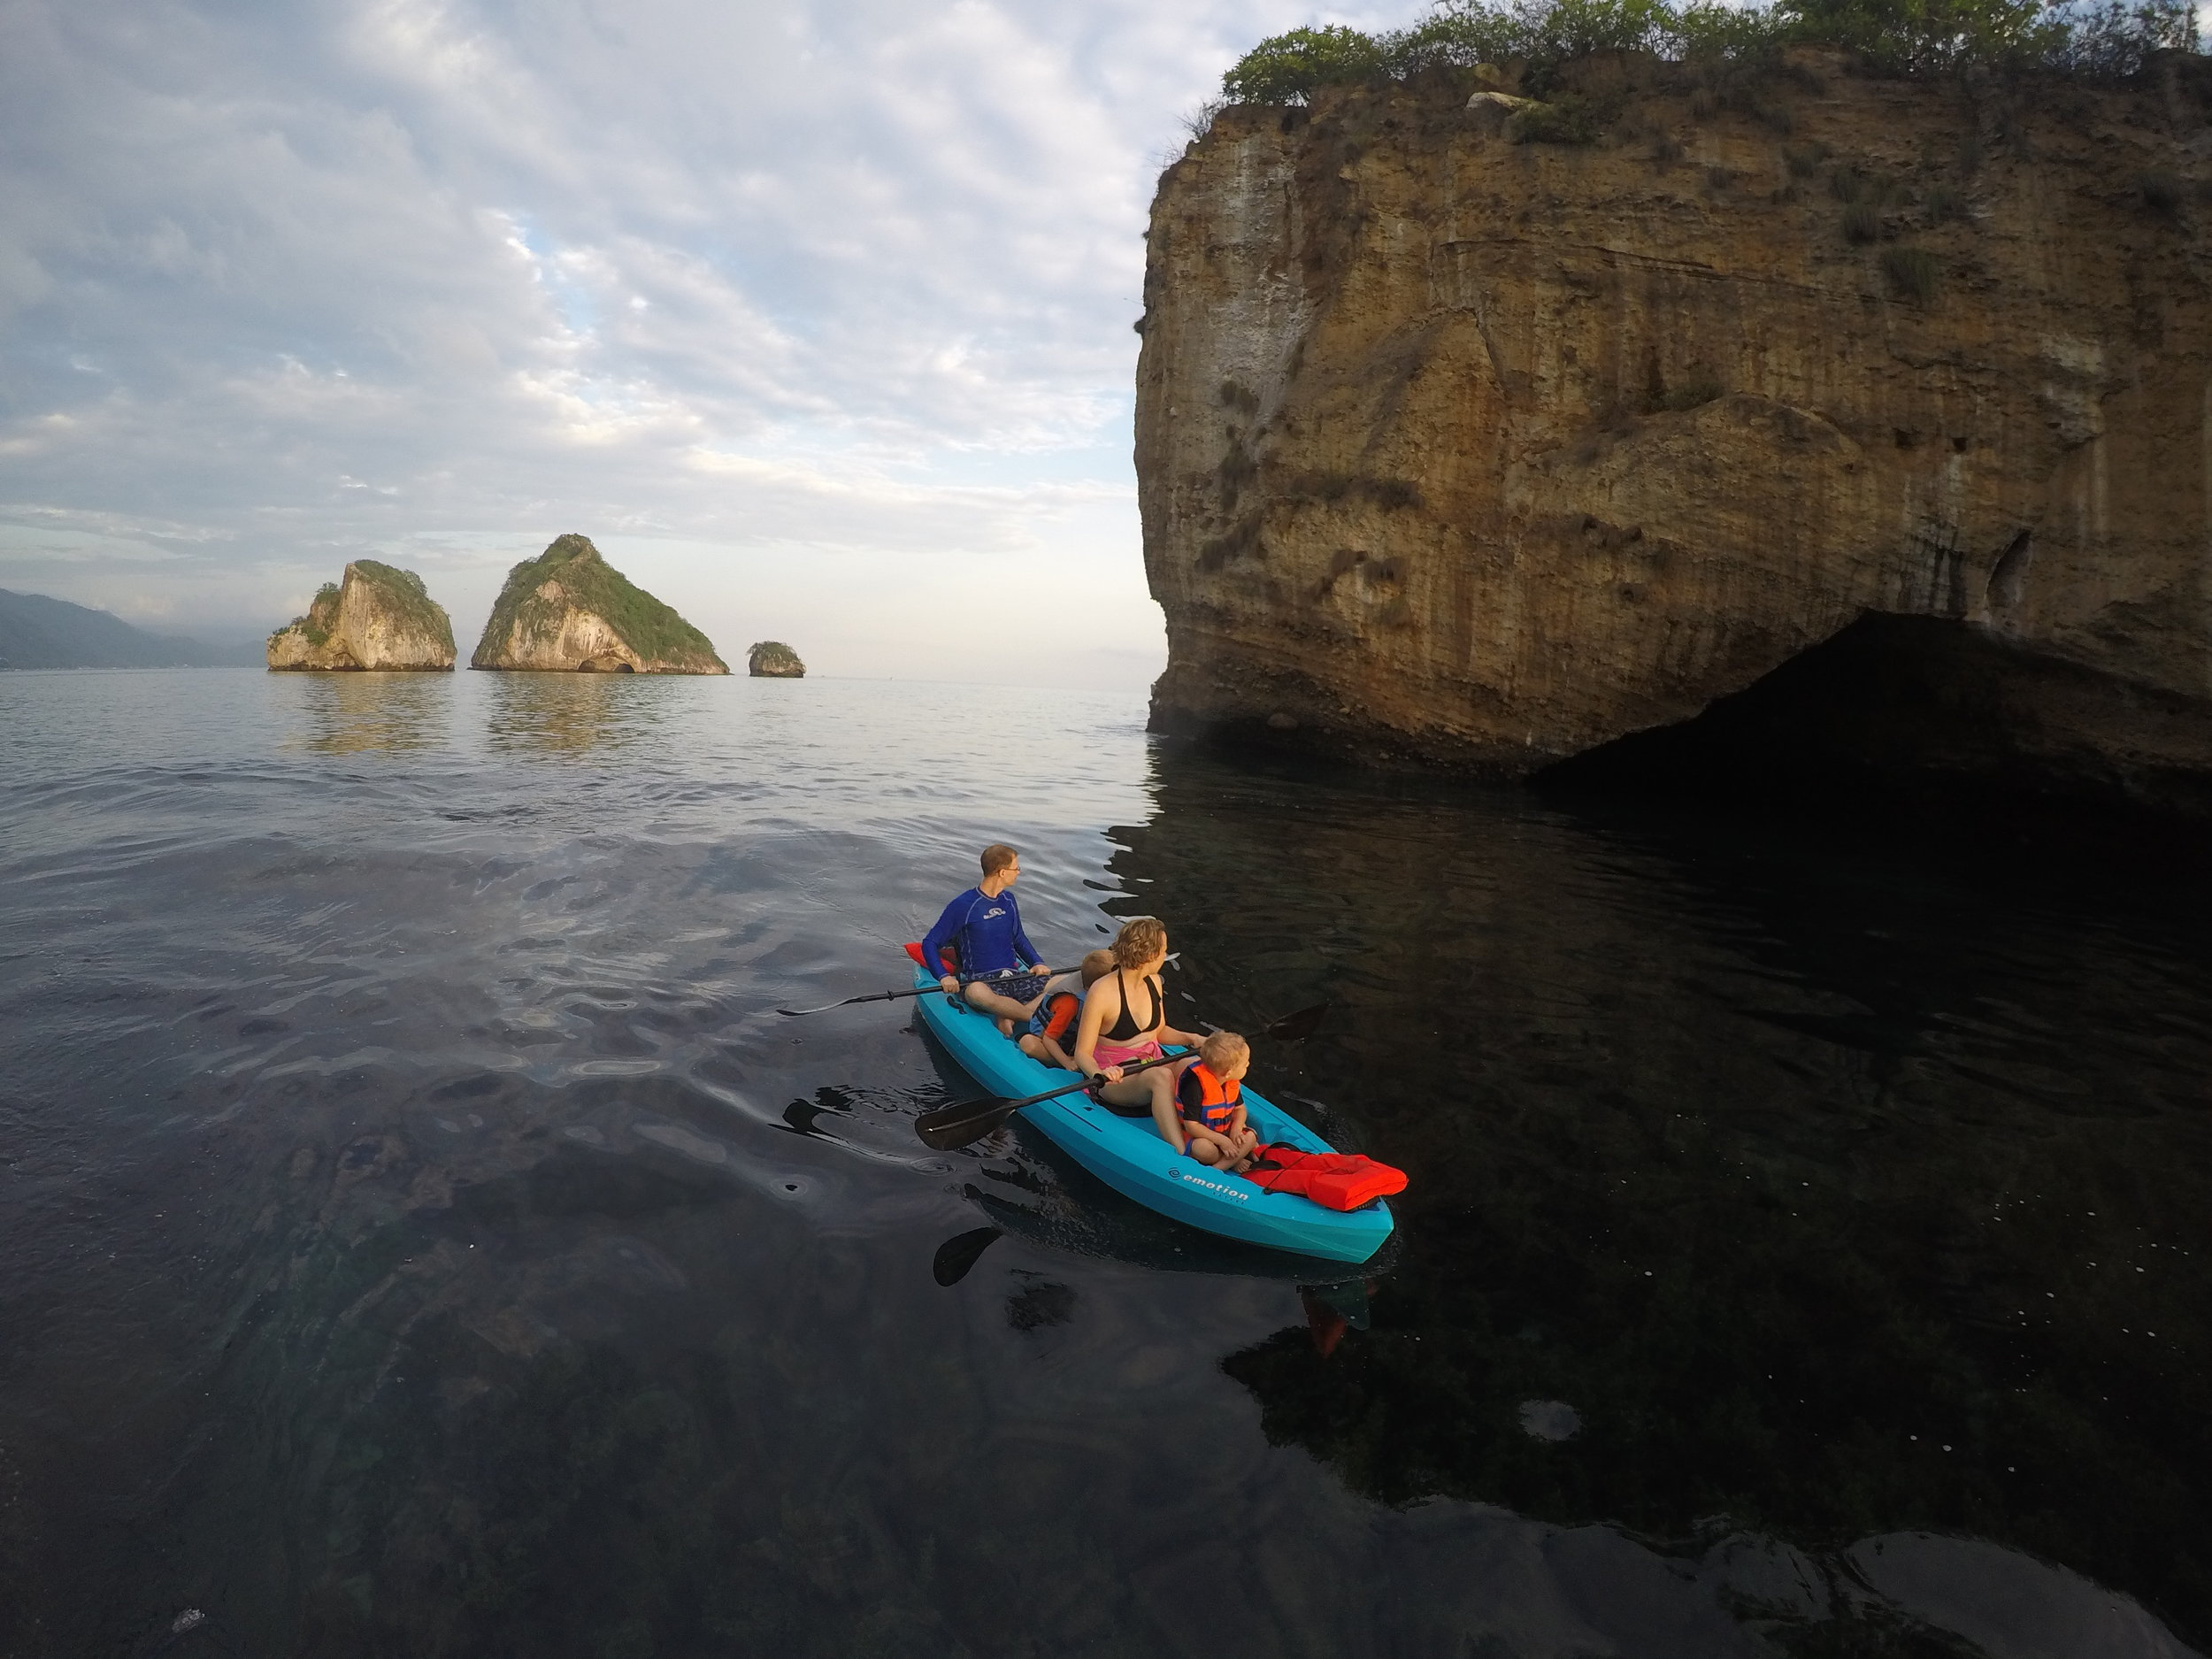 Tandem Kayak with the family in Los Arcos Marine Park  *Please note, you must book a Los Arcos Tour to visit the islands by kayak